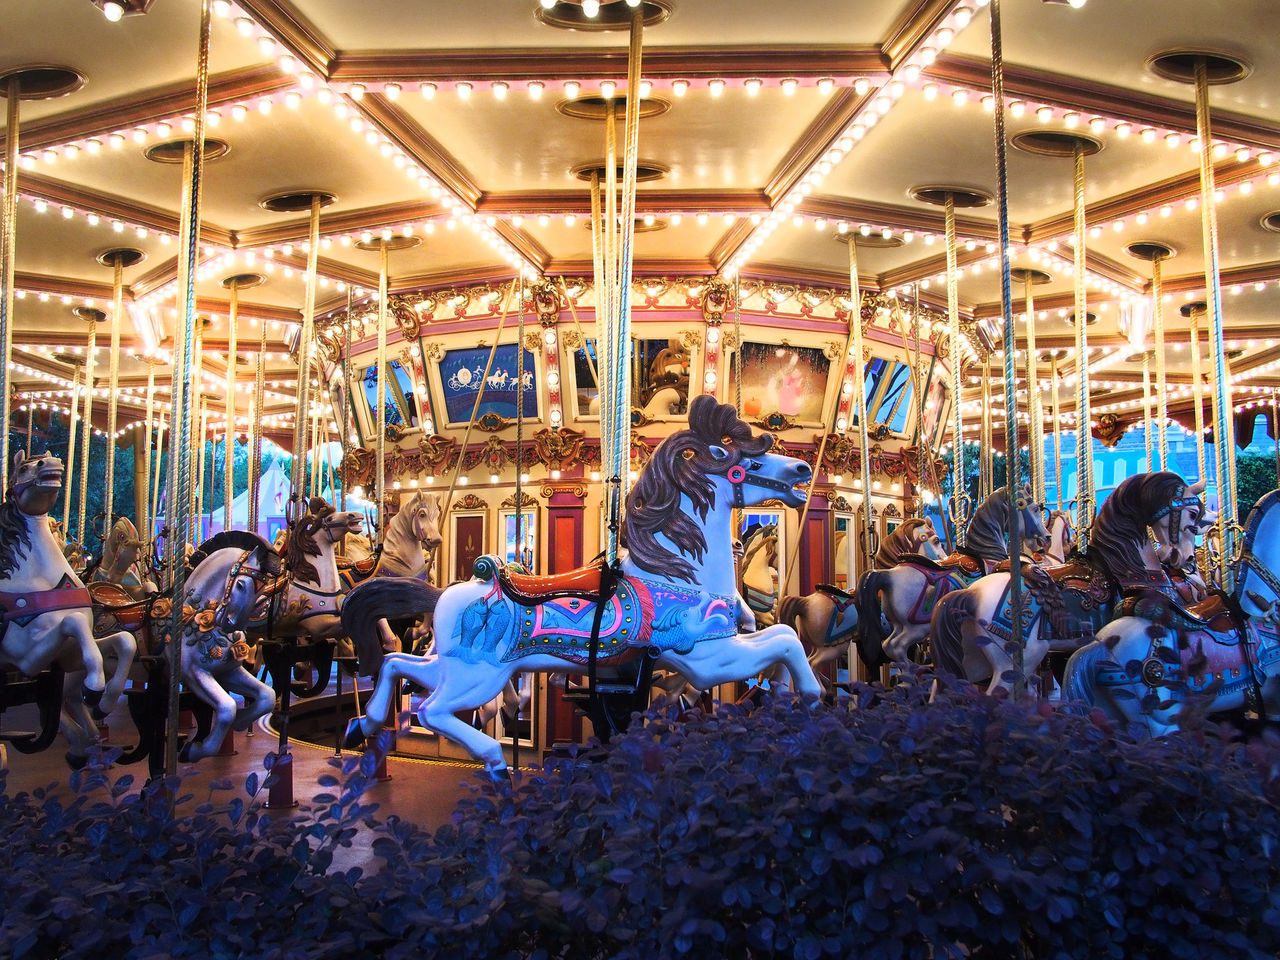 Carousel Carousel Horse Diseneyland Hong Kong Disneyland Horse Leisure Activity Rides Rides At Disneyland Showcase July